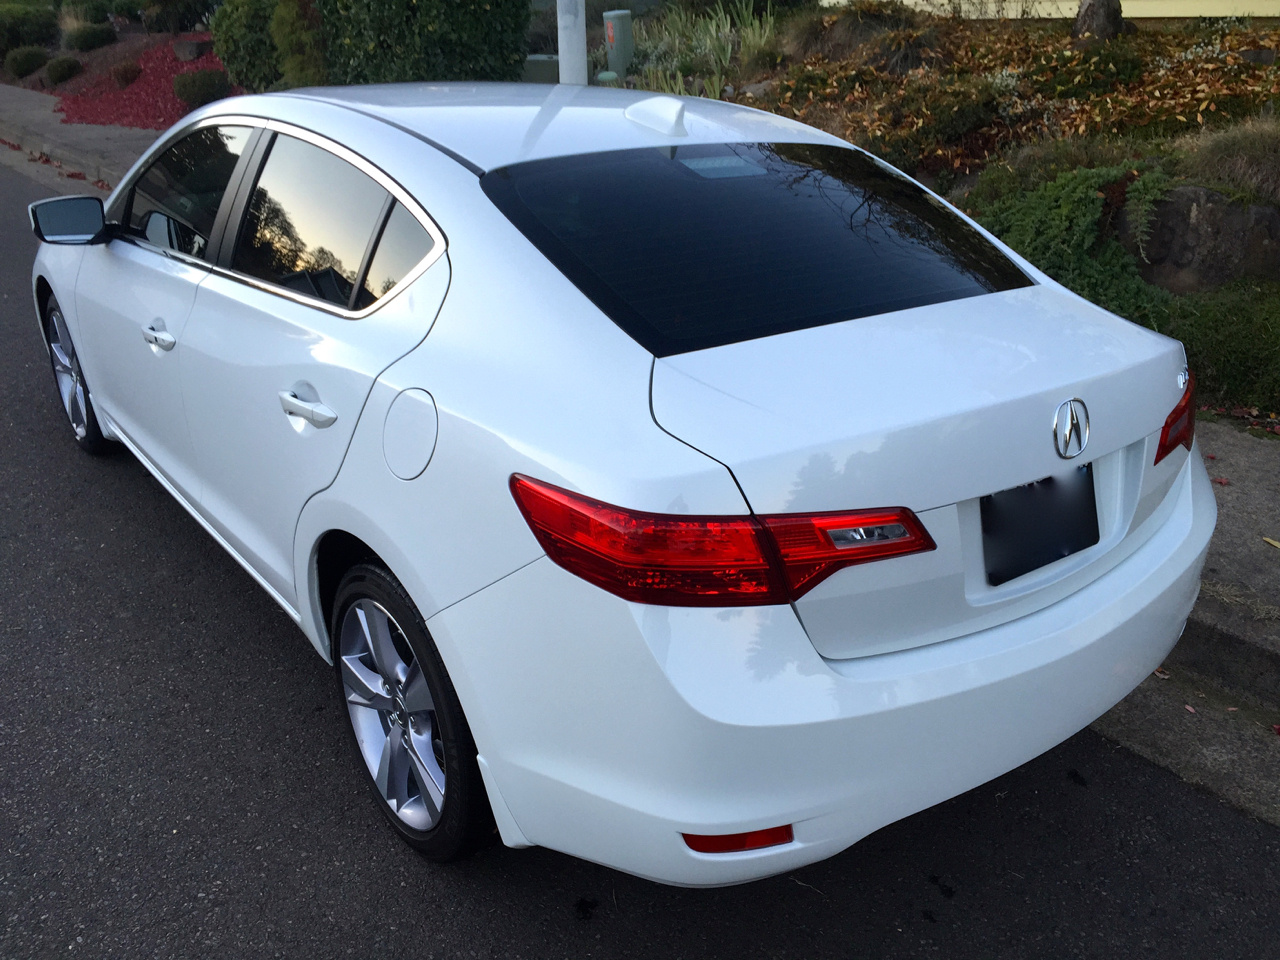 2014 Acura ILX - Review - CarGurus